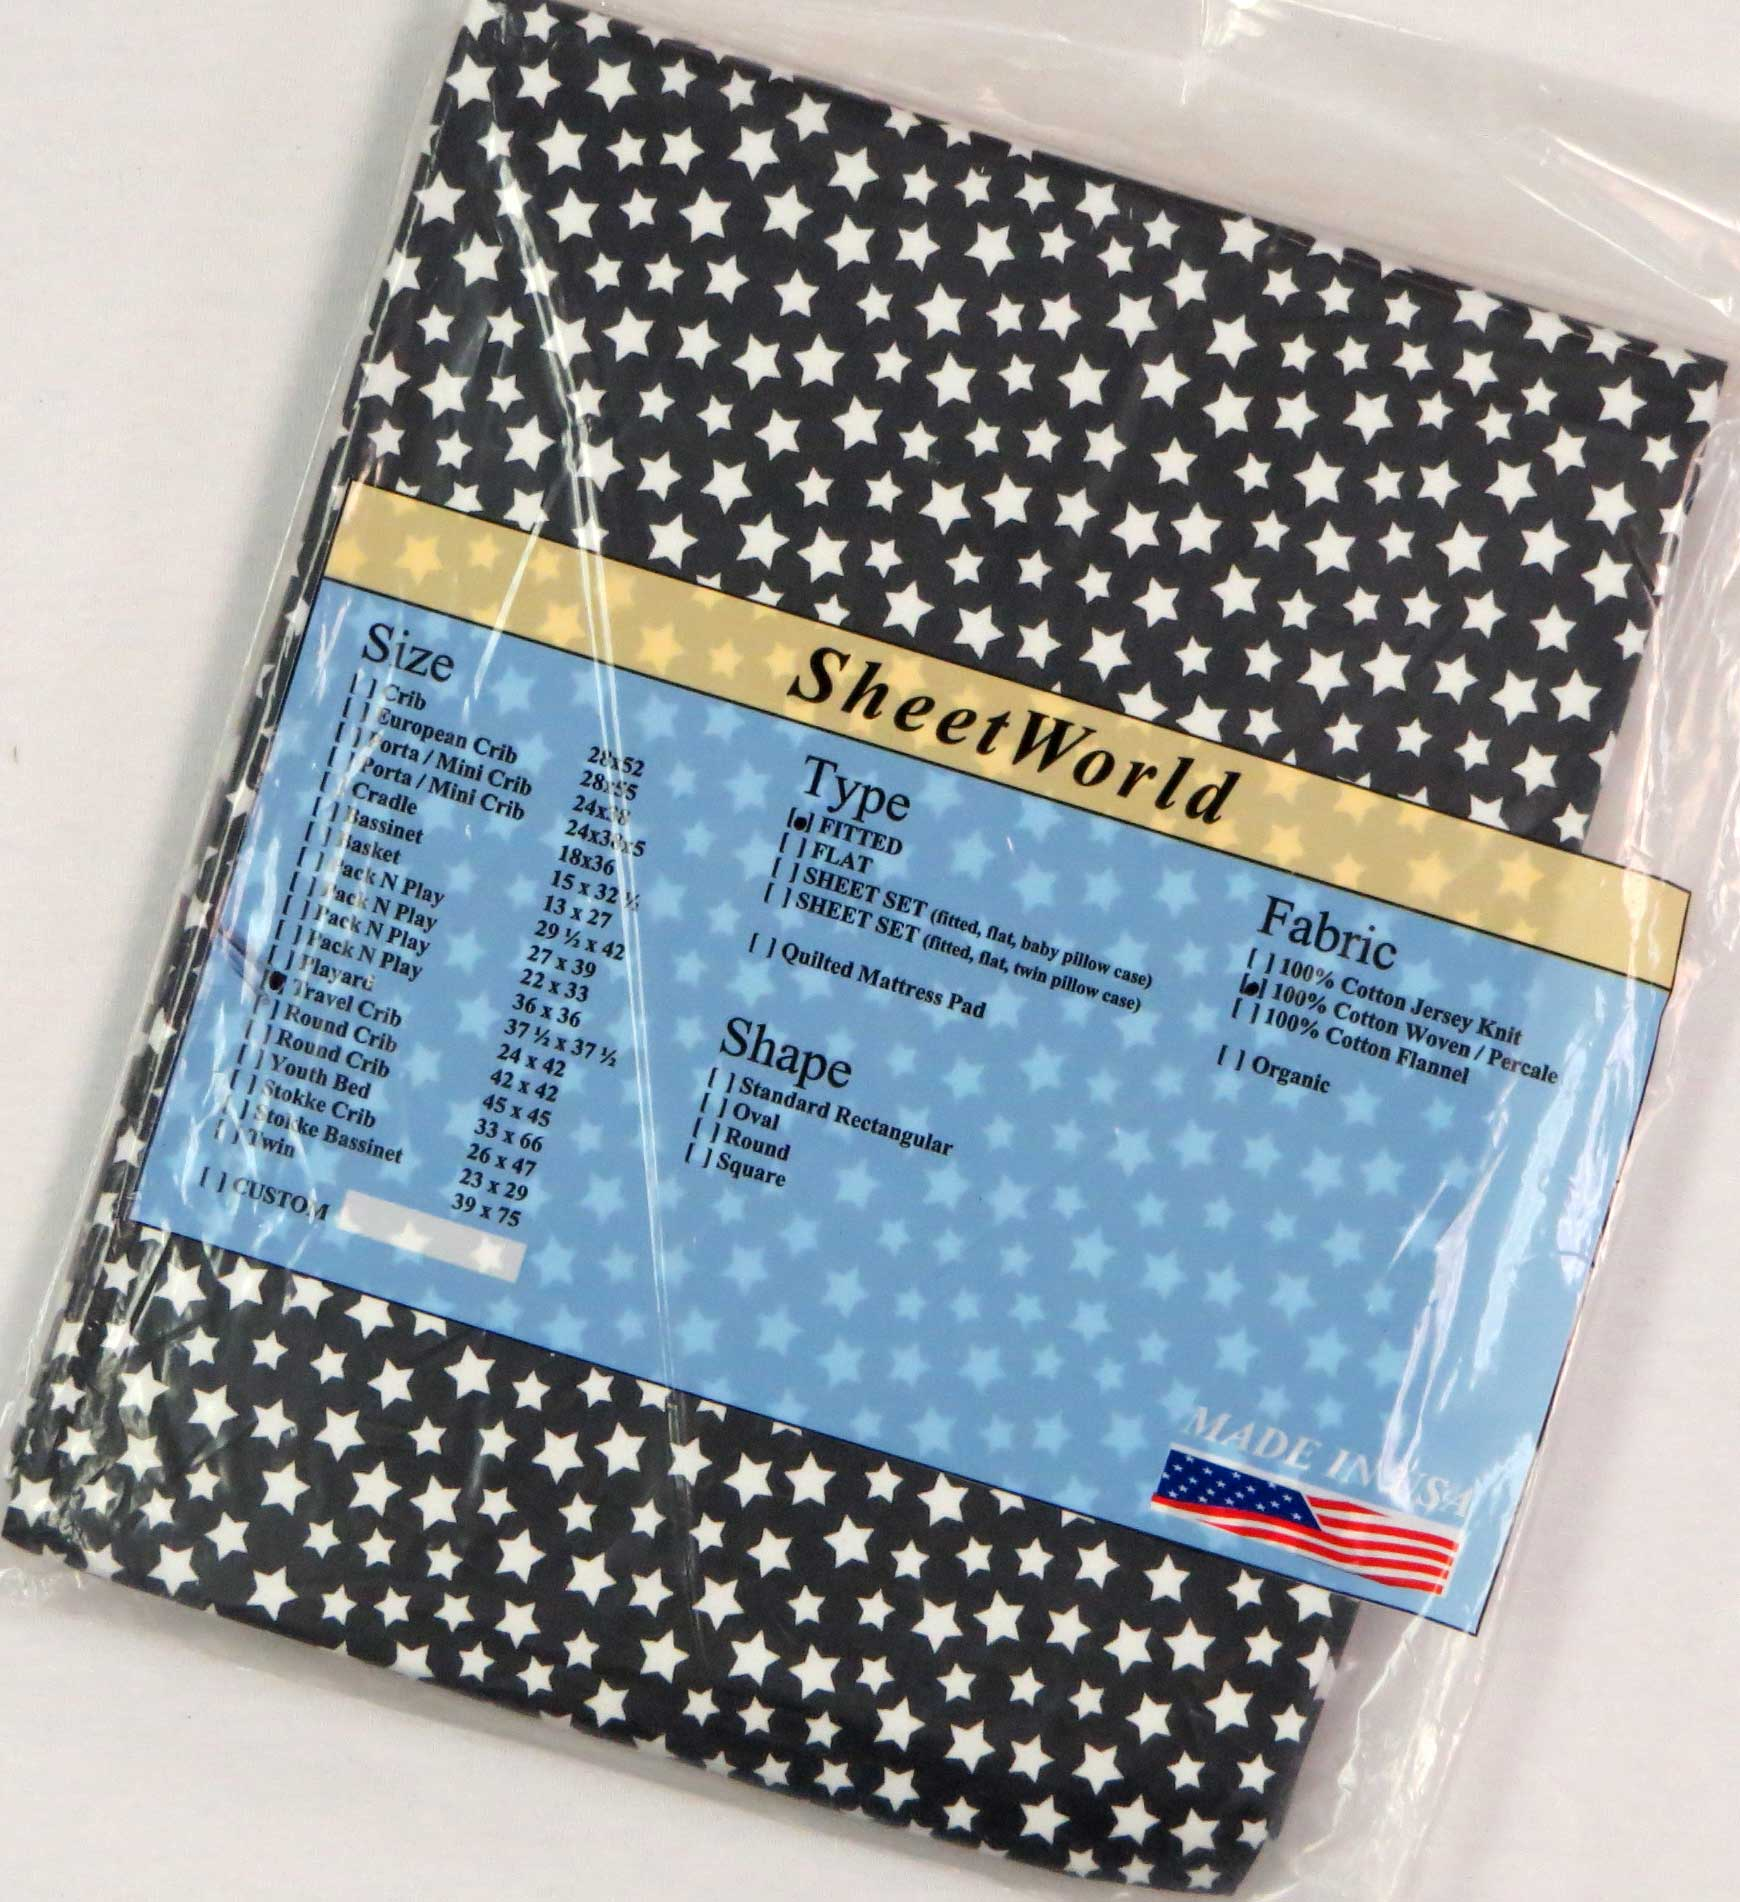 White Black Stars Cotton Percale Travel Lite Playard Sheet - Fits BabyBjorn 24 x 42